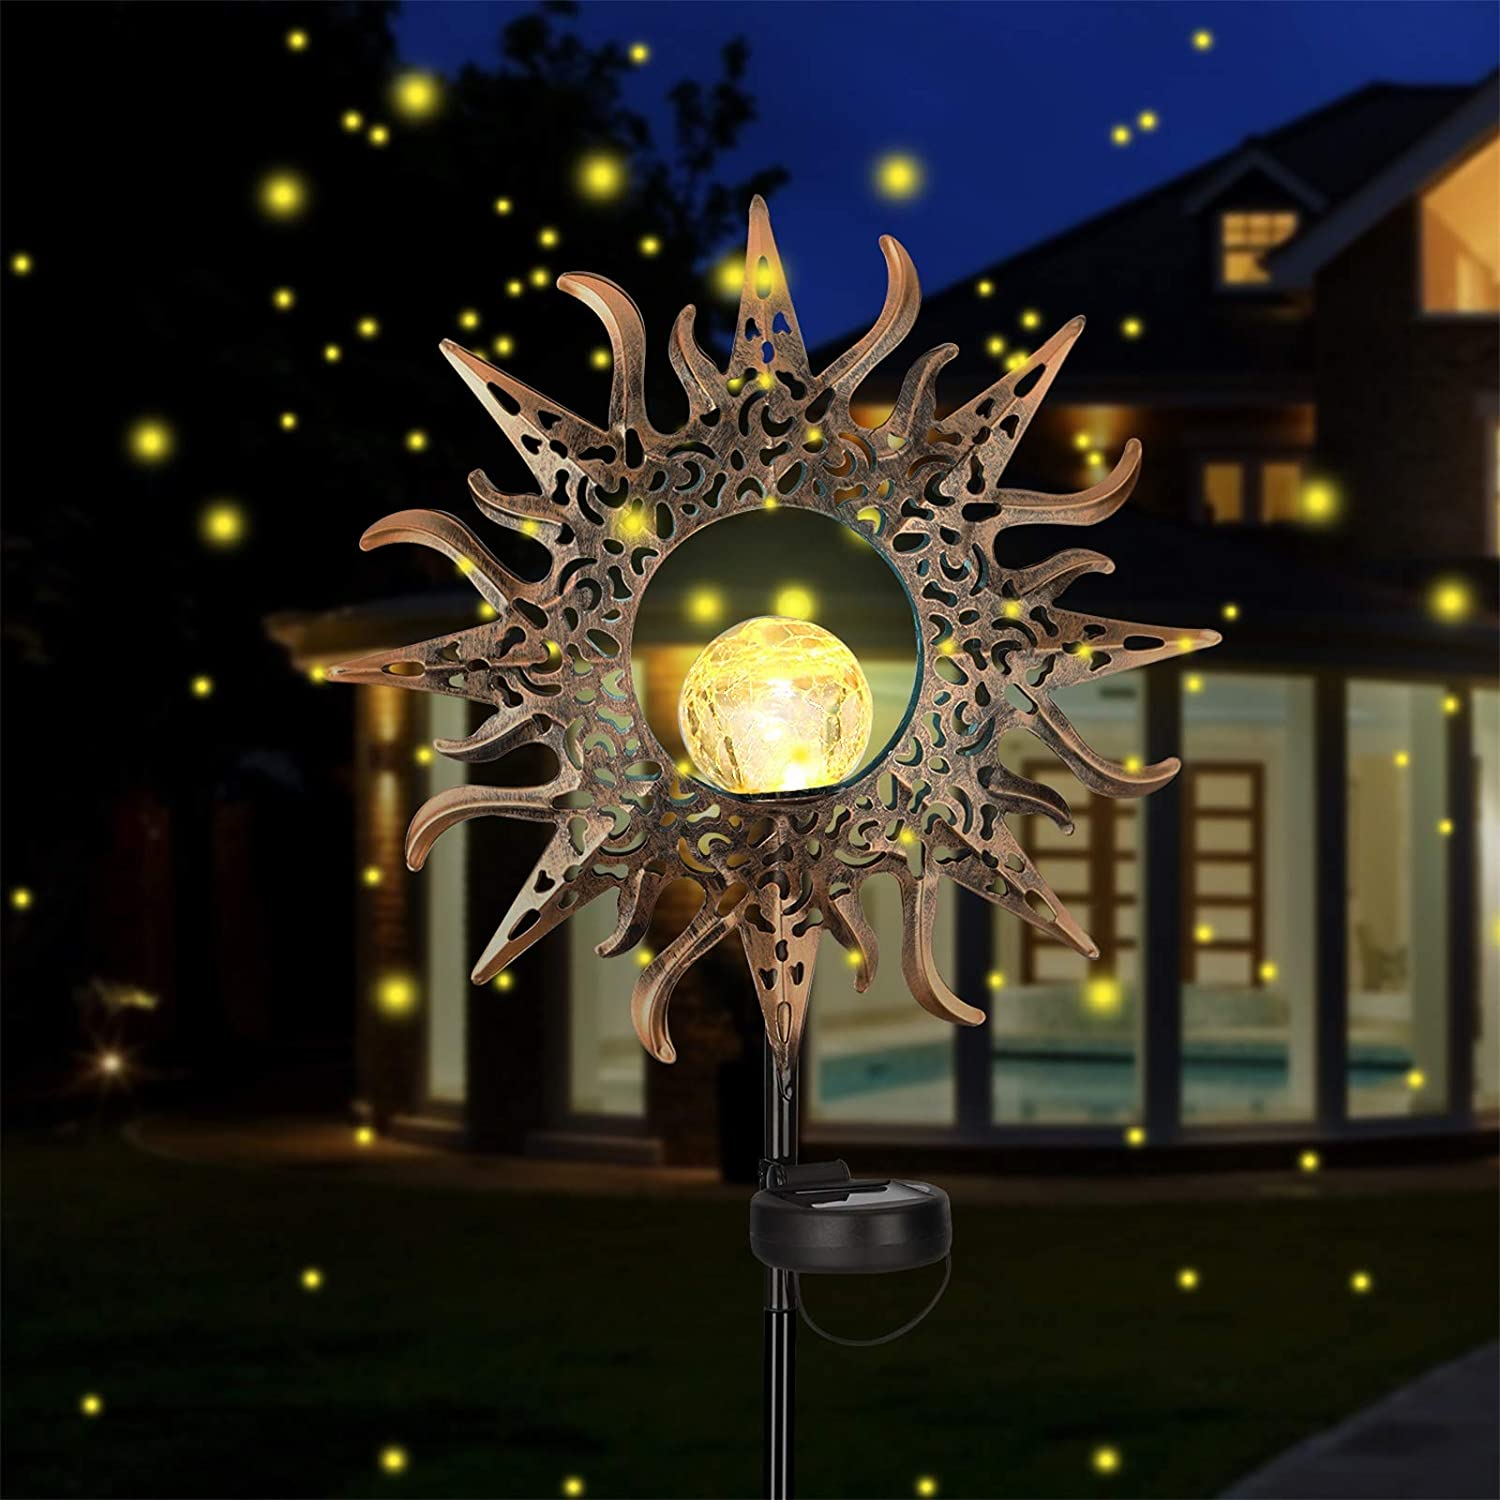 Maxuni Sun Solar Lights Outdoor Sun Decorative Stakes Cracked Glass Globe Garden Lights Solar Powered, Waterproof Metal LED Lights for Garden, Yard, Lawn, Patio